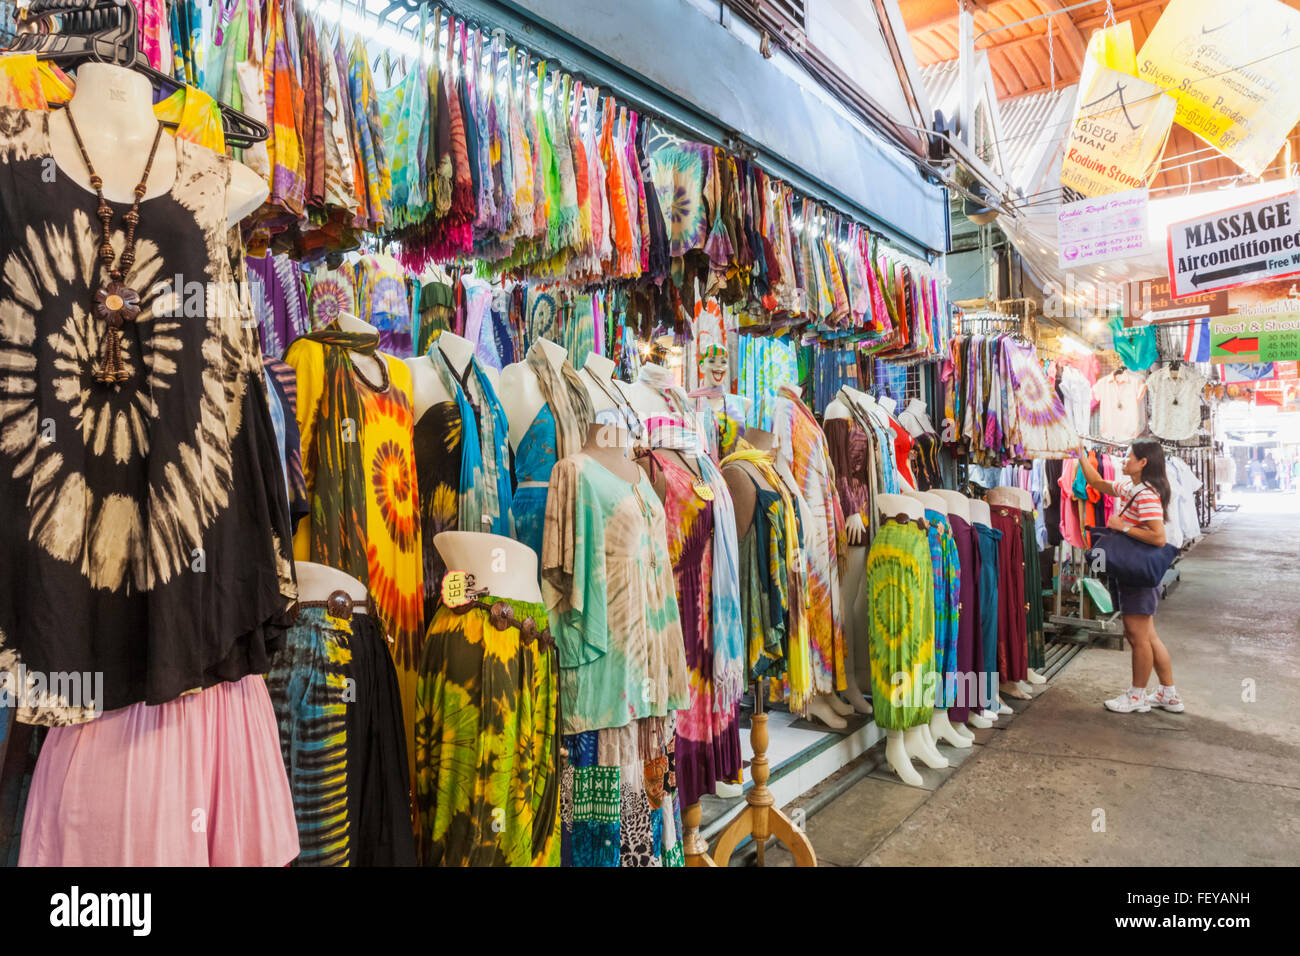 Thailand Bangkok Chatuchak Market Display Of Women S